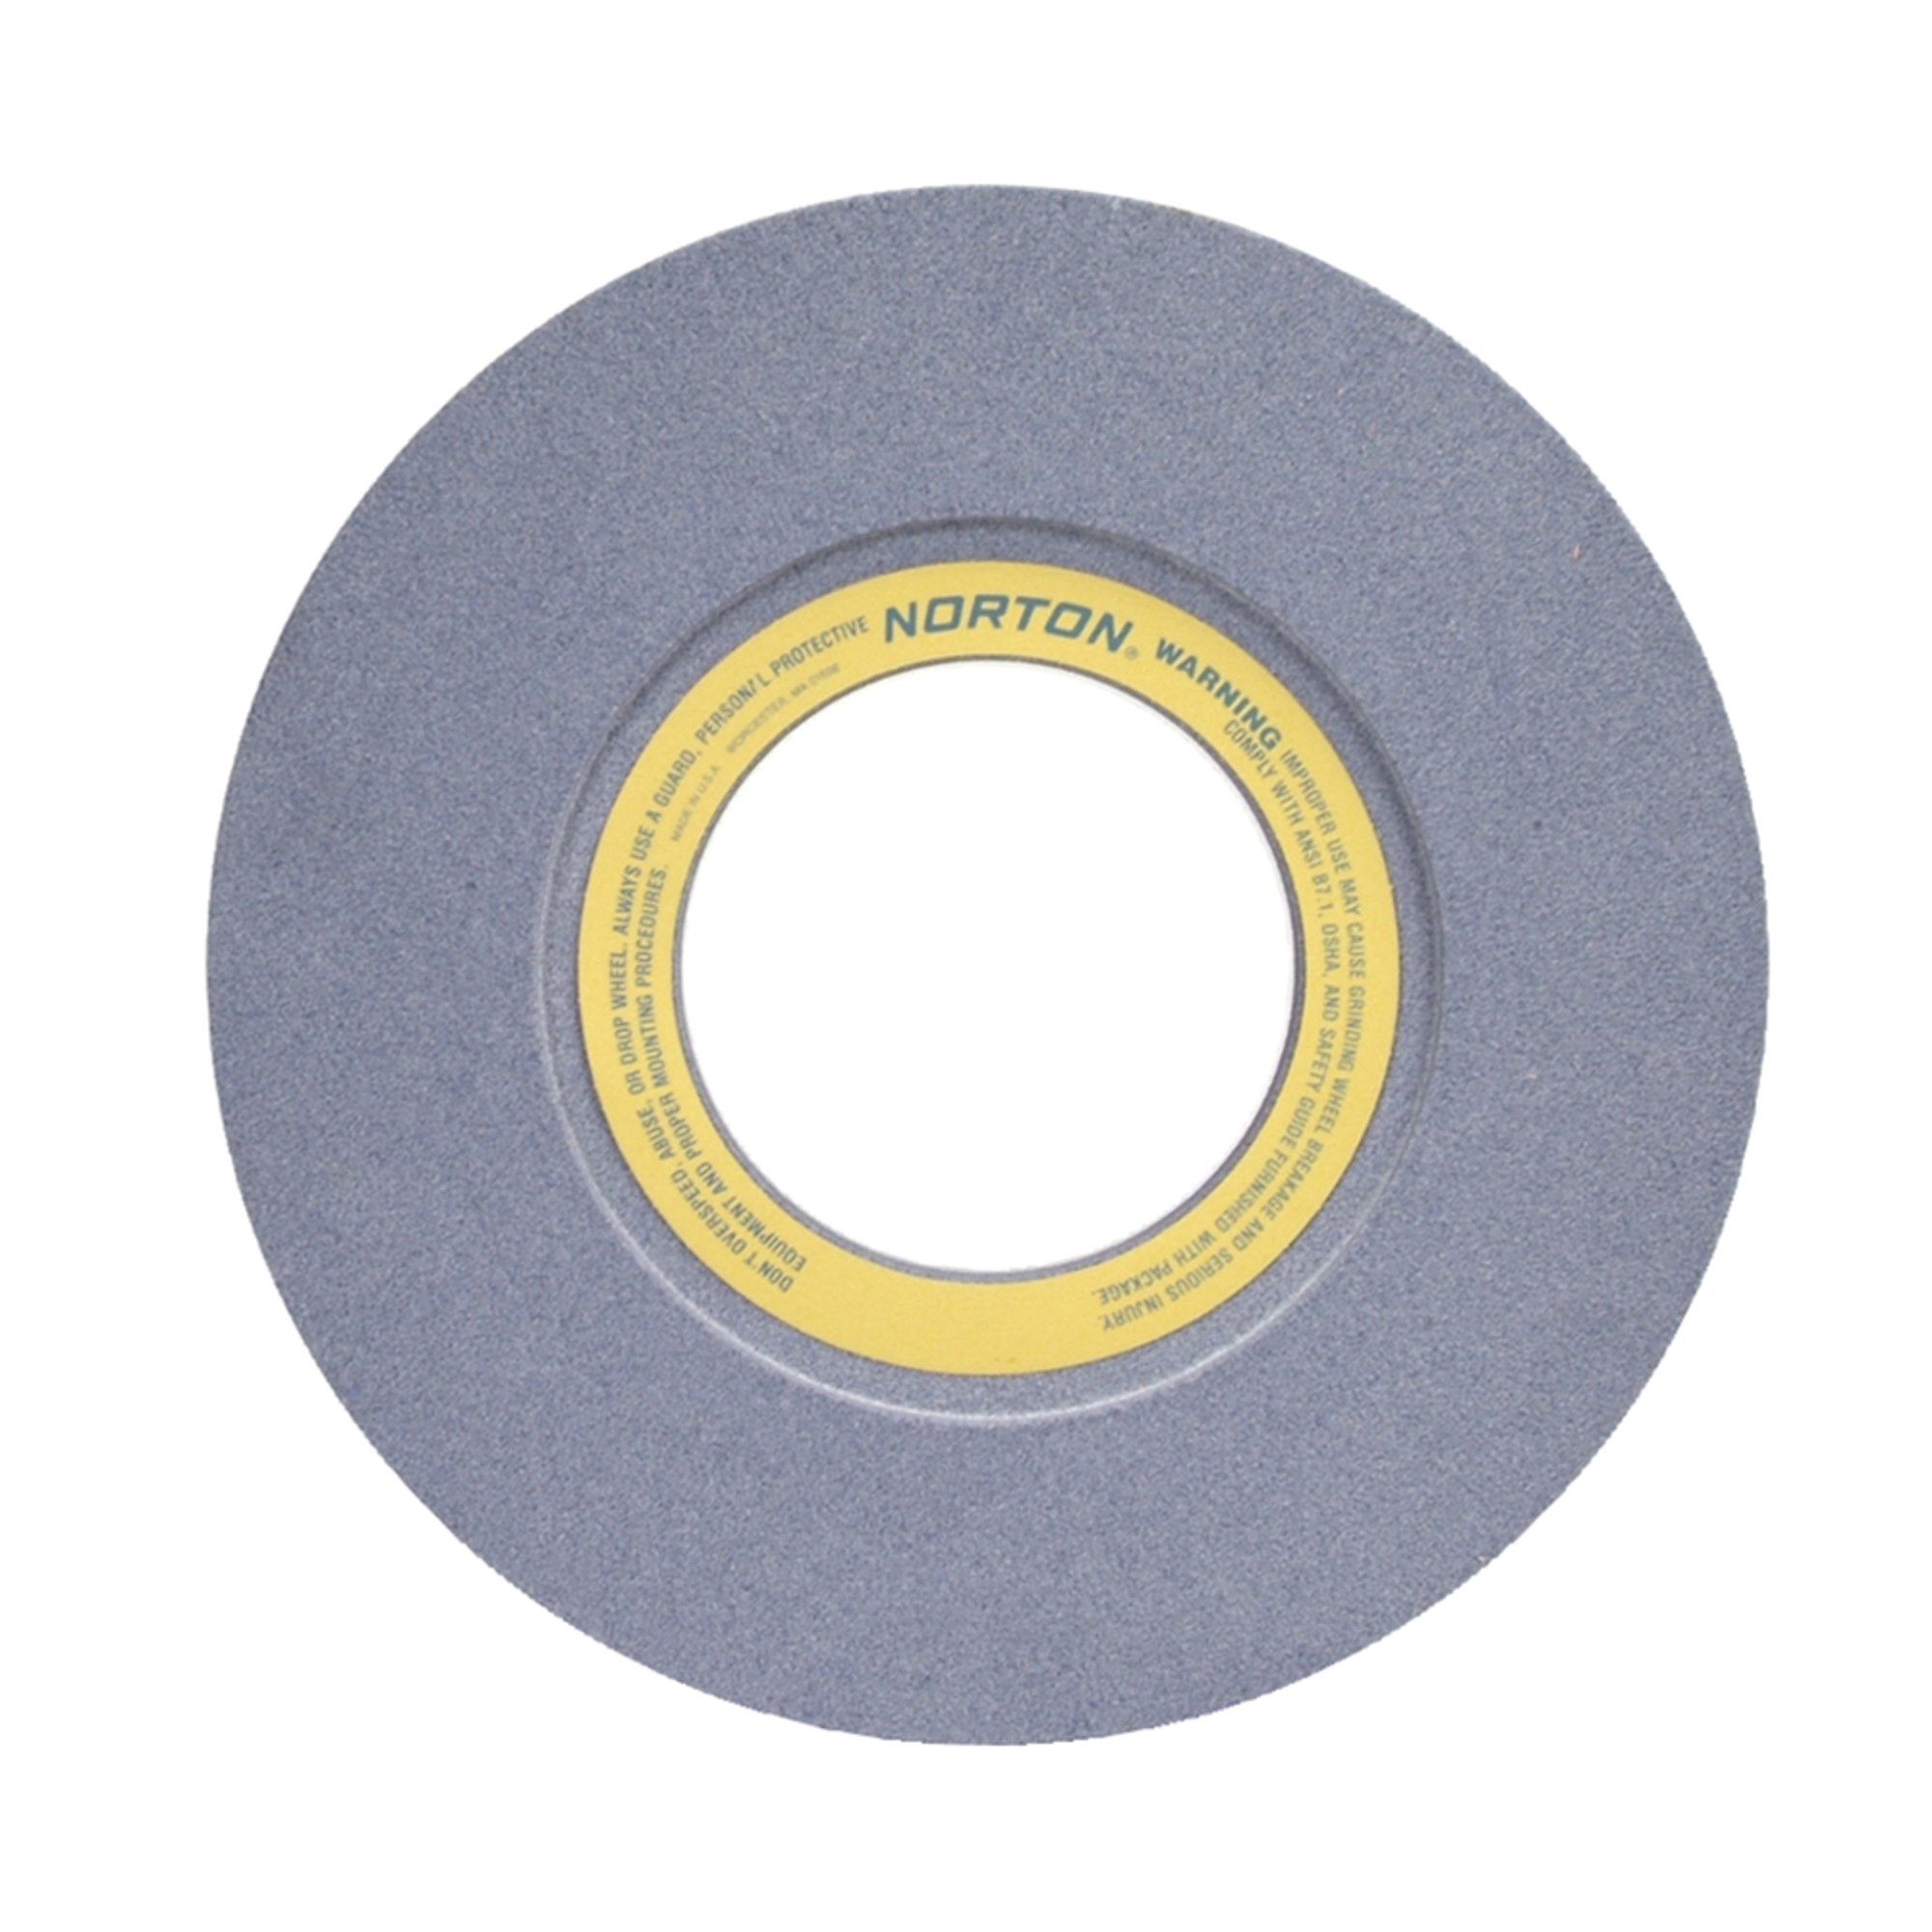 Norton® 66253464960 32A Straight Surface and Cylindrical Grinding Wheel, 16 in Dia x 2 in THK, 5 in Center Hole, 60 Grit, Aluminum Oxide Abrasive